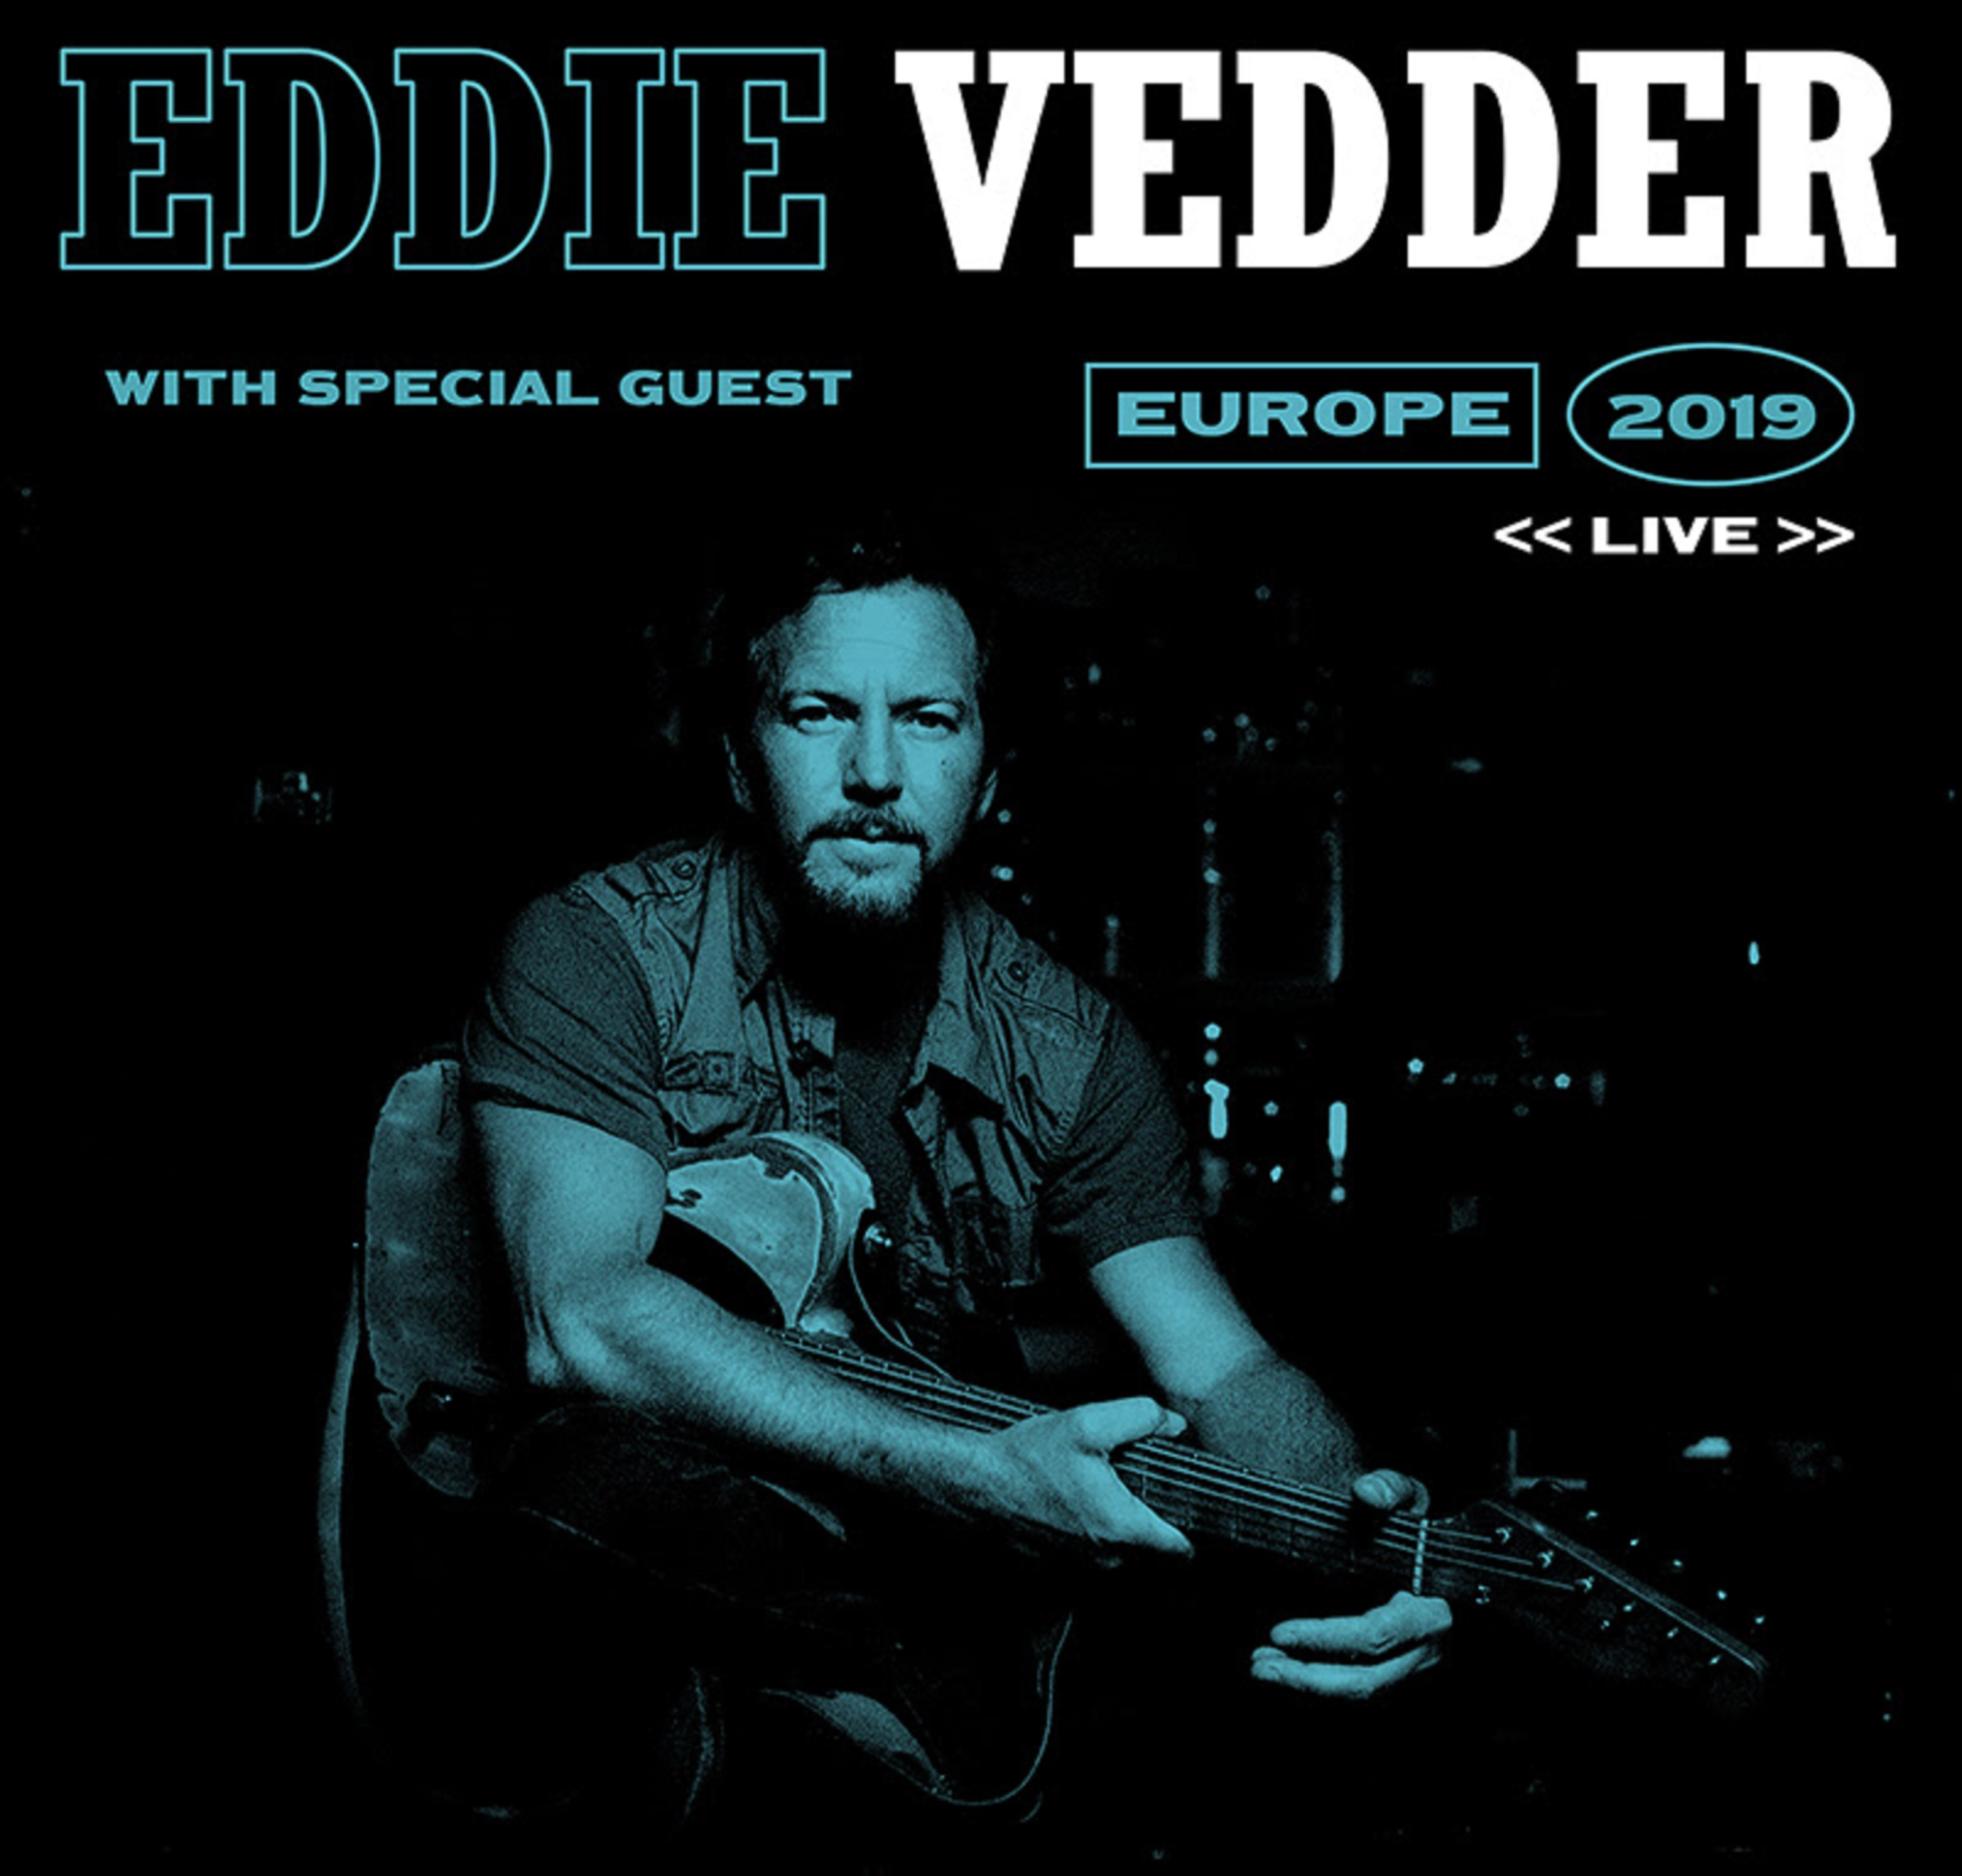 Eddie Vedder Announces 2019 European Tour